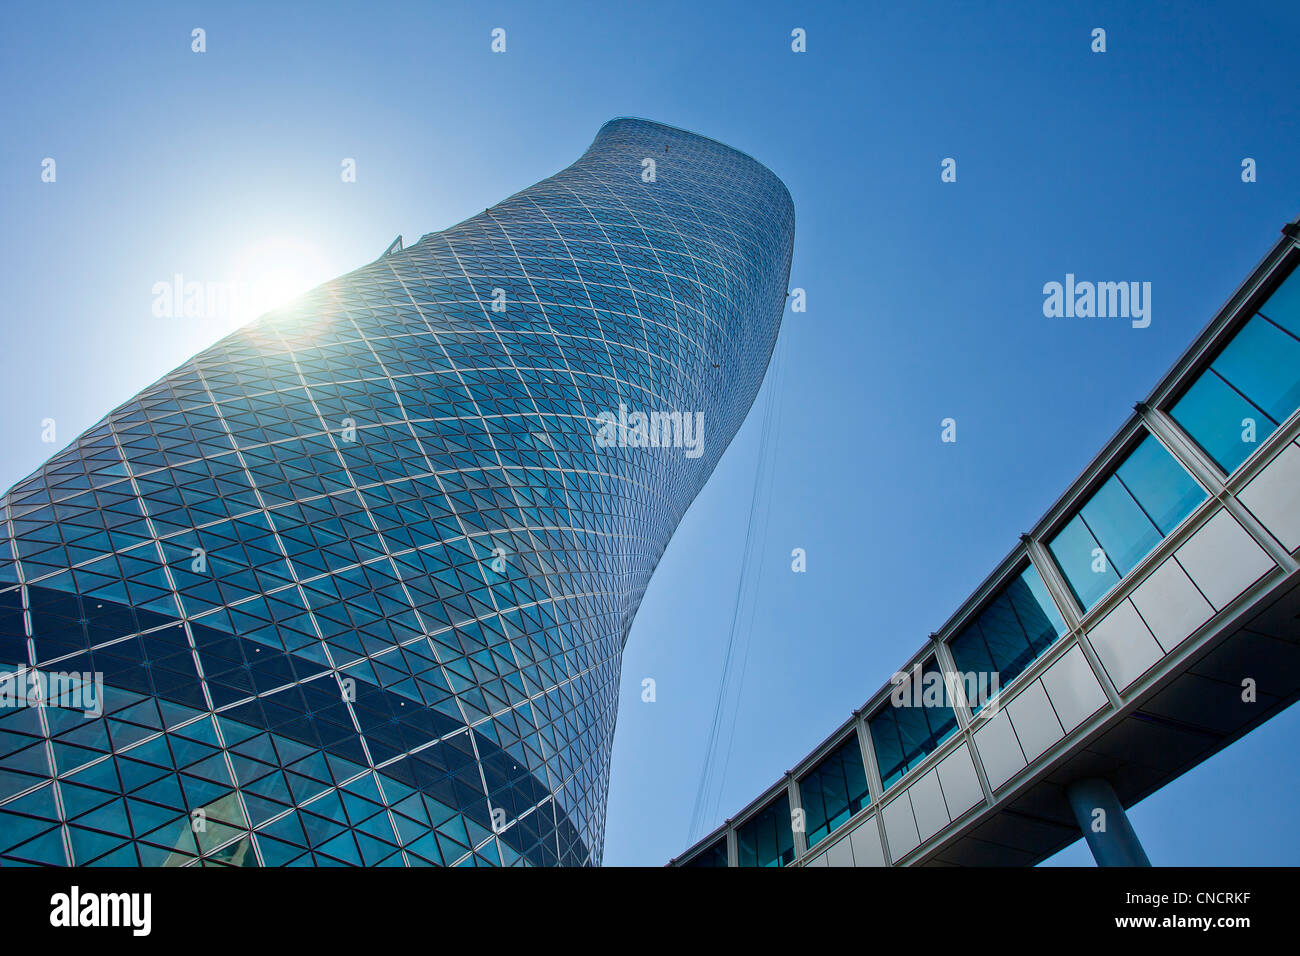 Abu Dhabi, Hyatt Capital Gate Hotel Stockbild